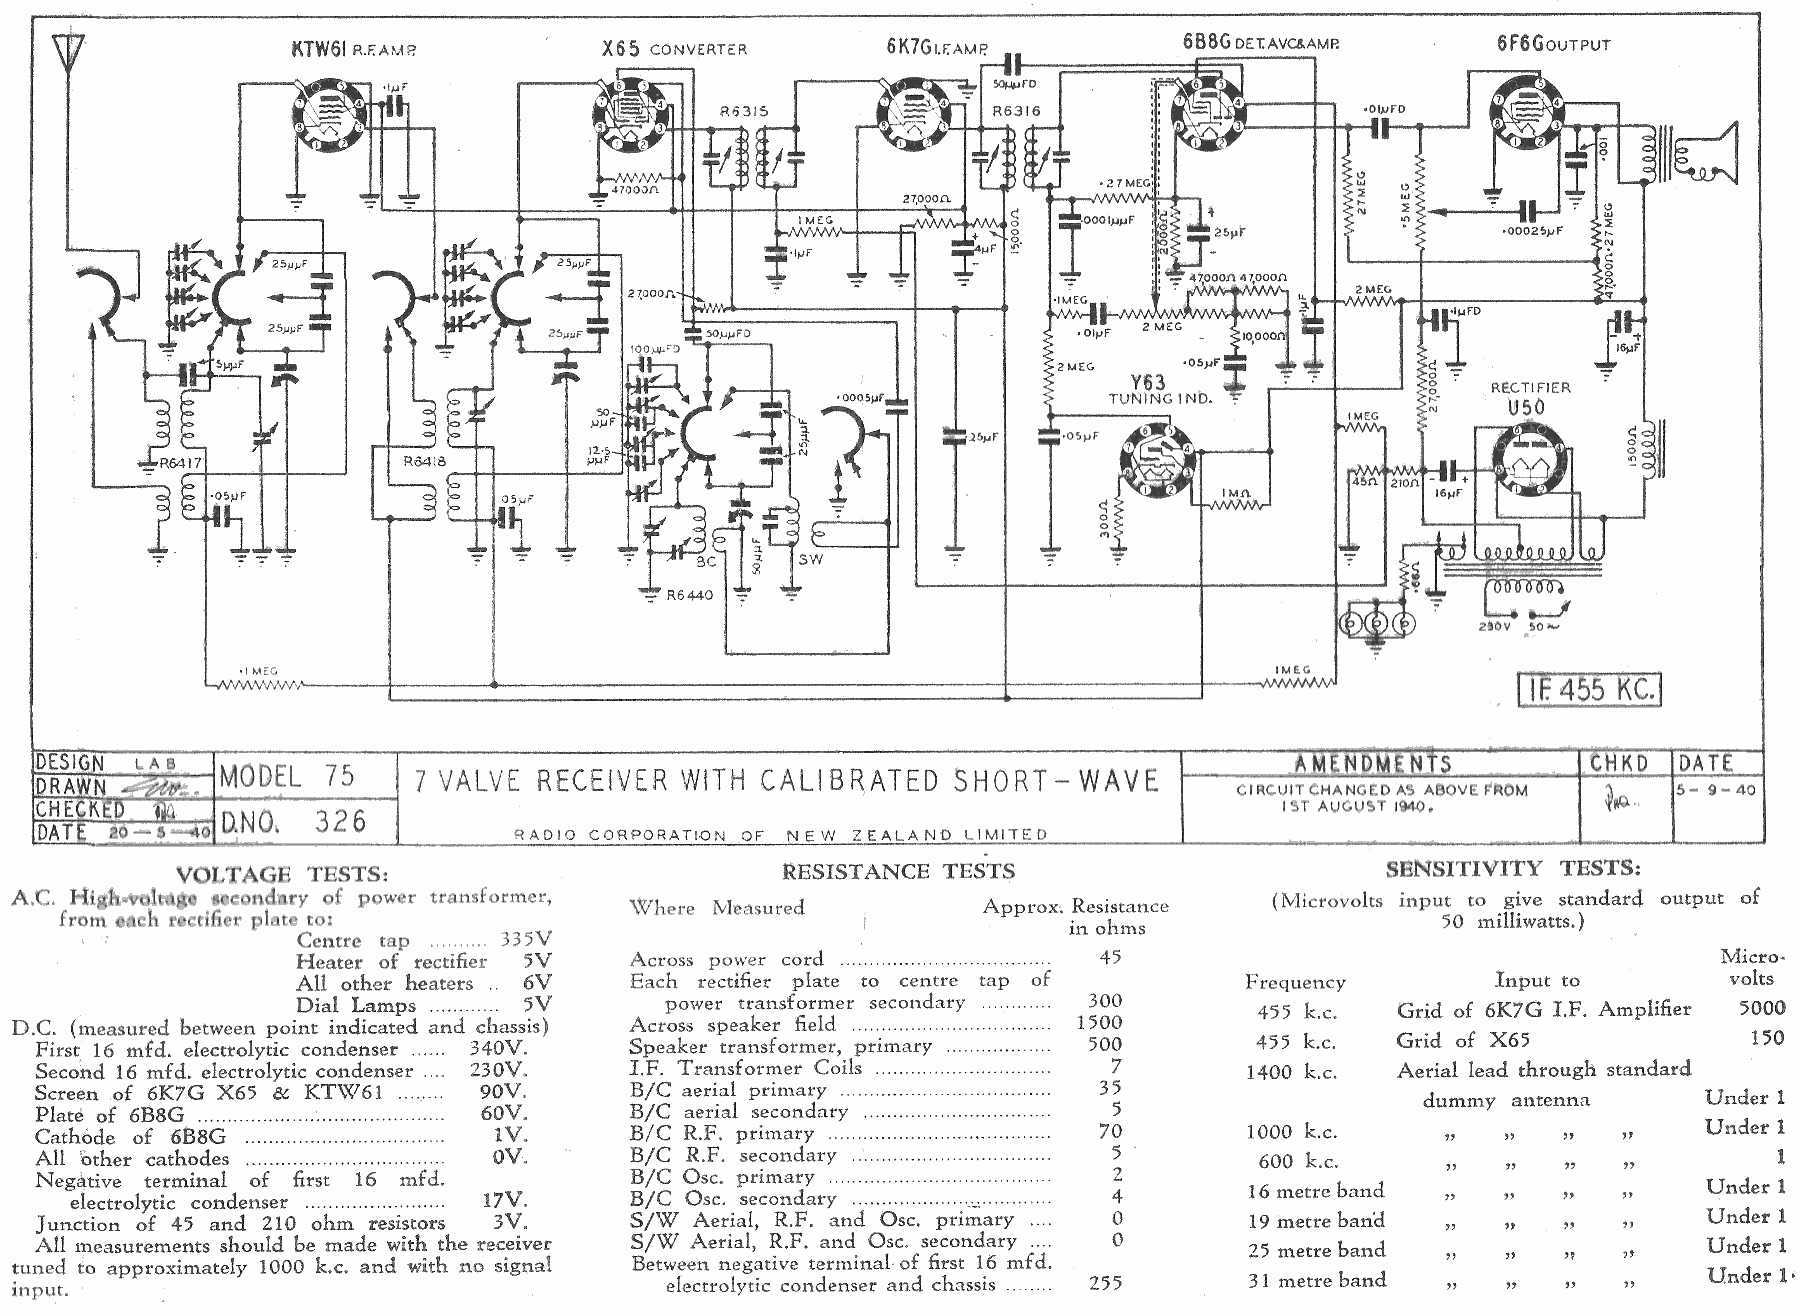 1940 Courtenay and Columbus model 75 Schematic